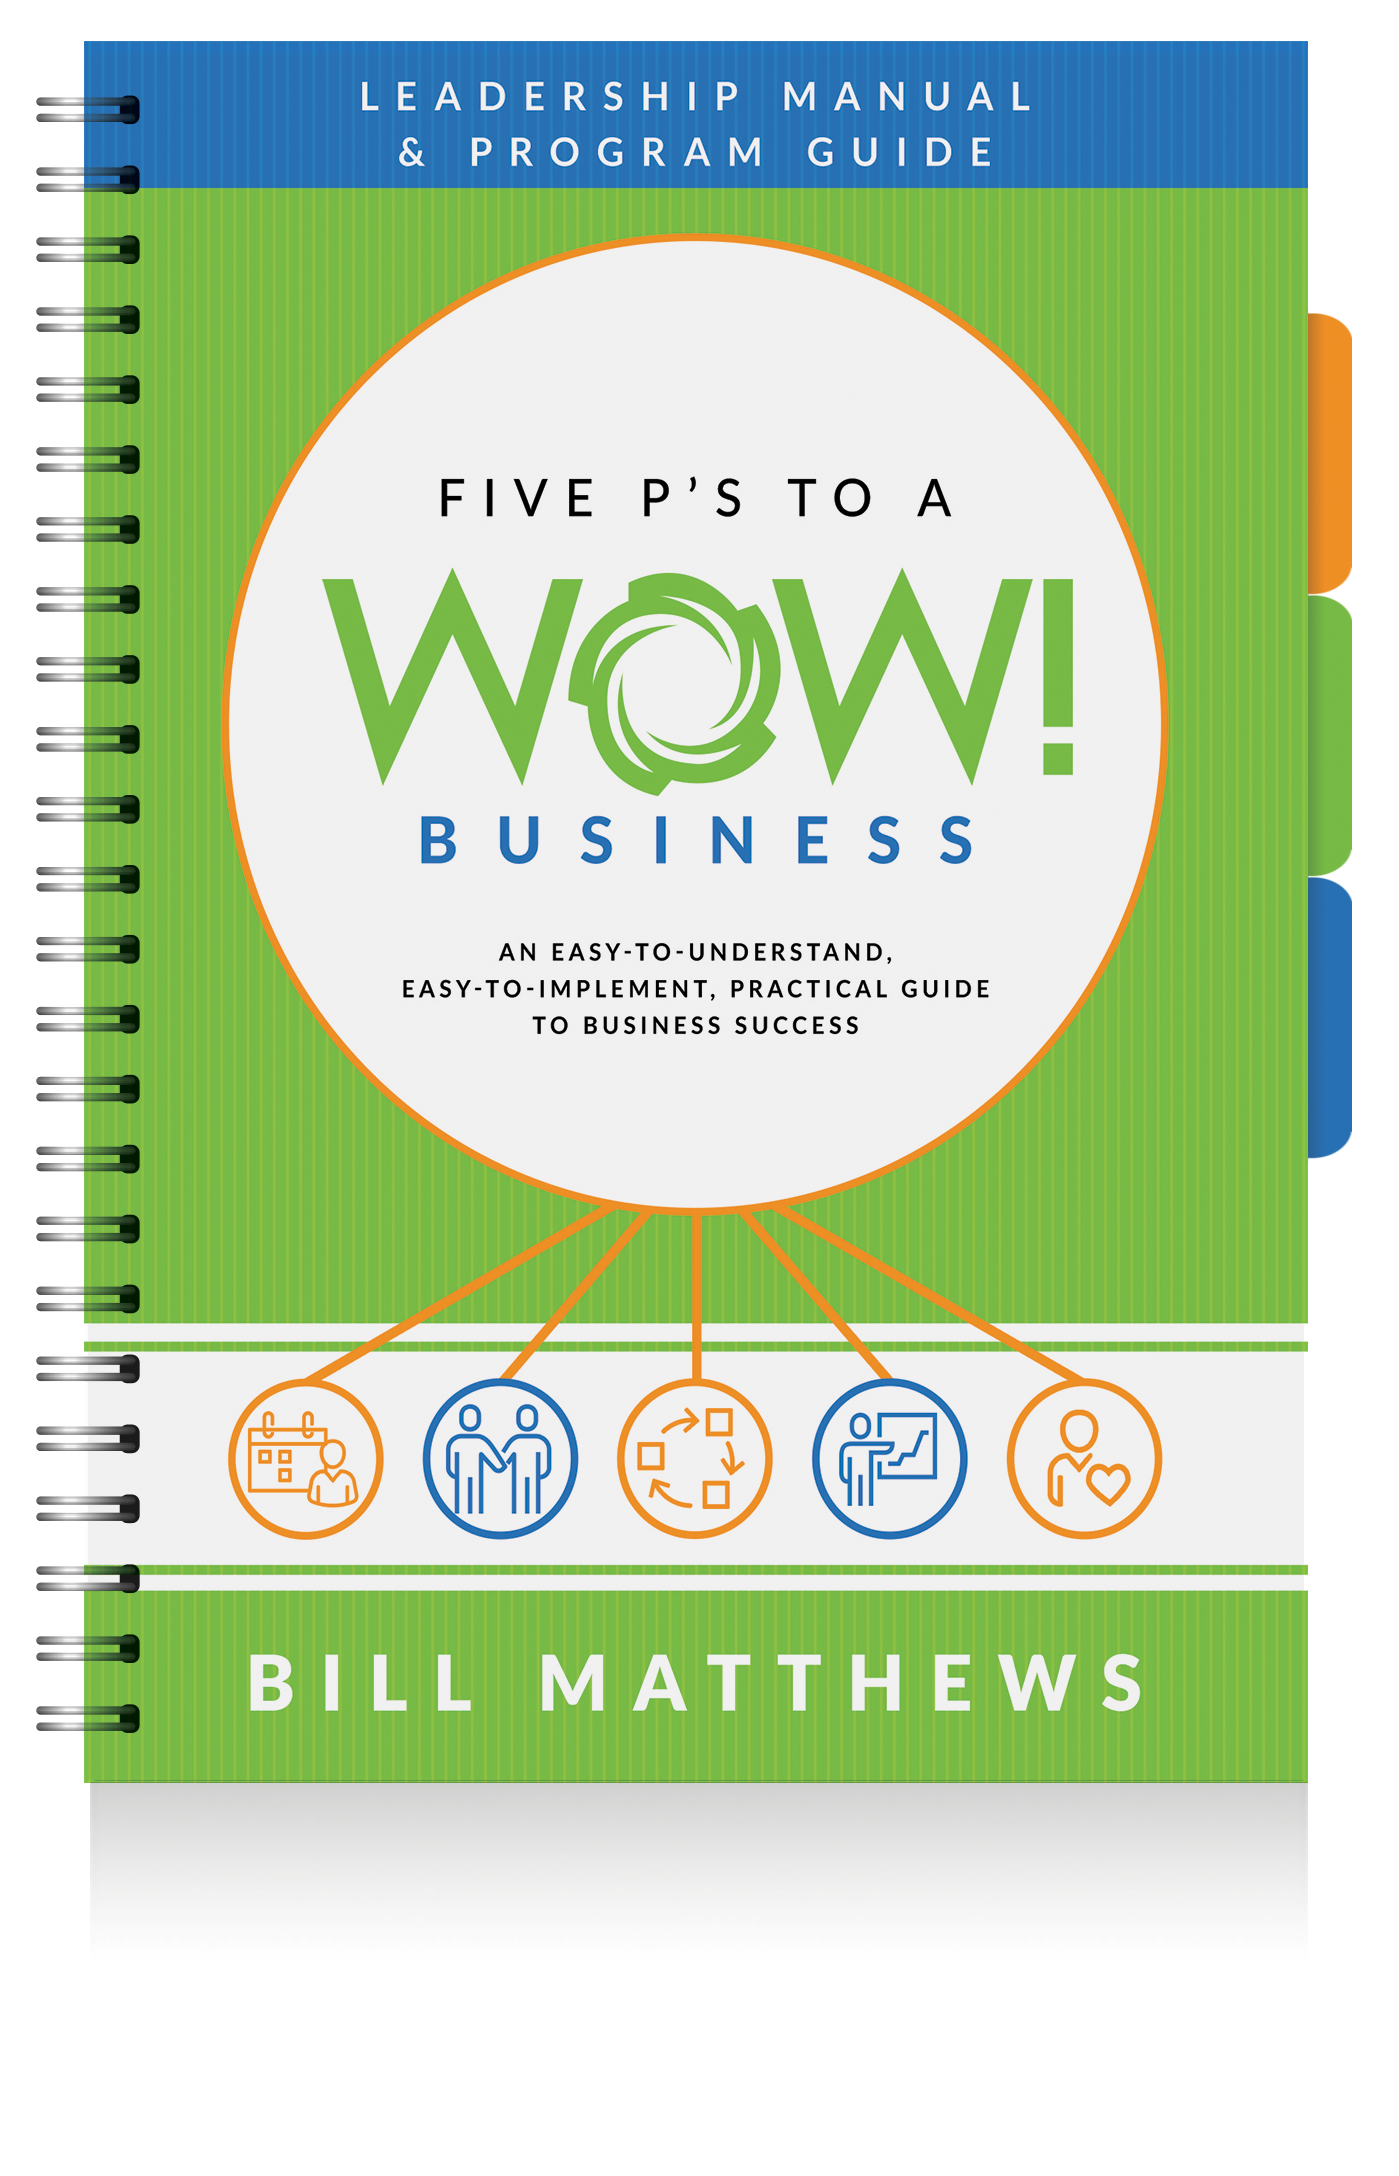 Five P's to a Wow Business Leadership Manual & Program Guide - By Bill Matthews